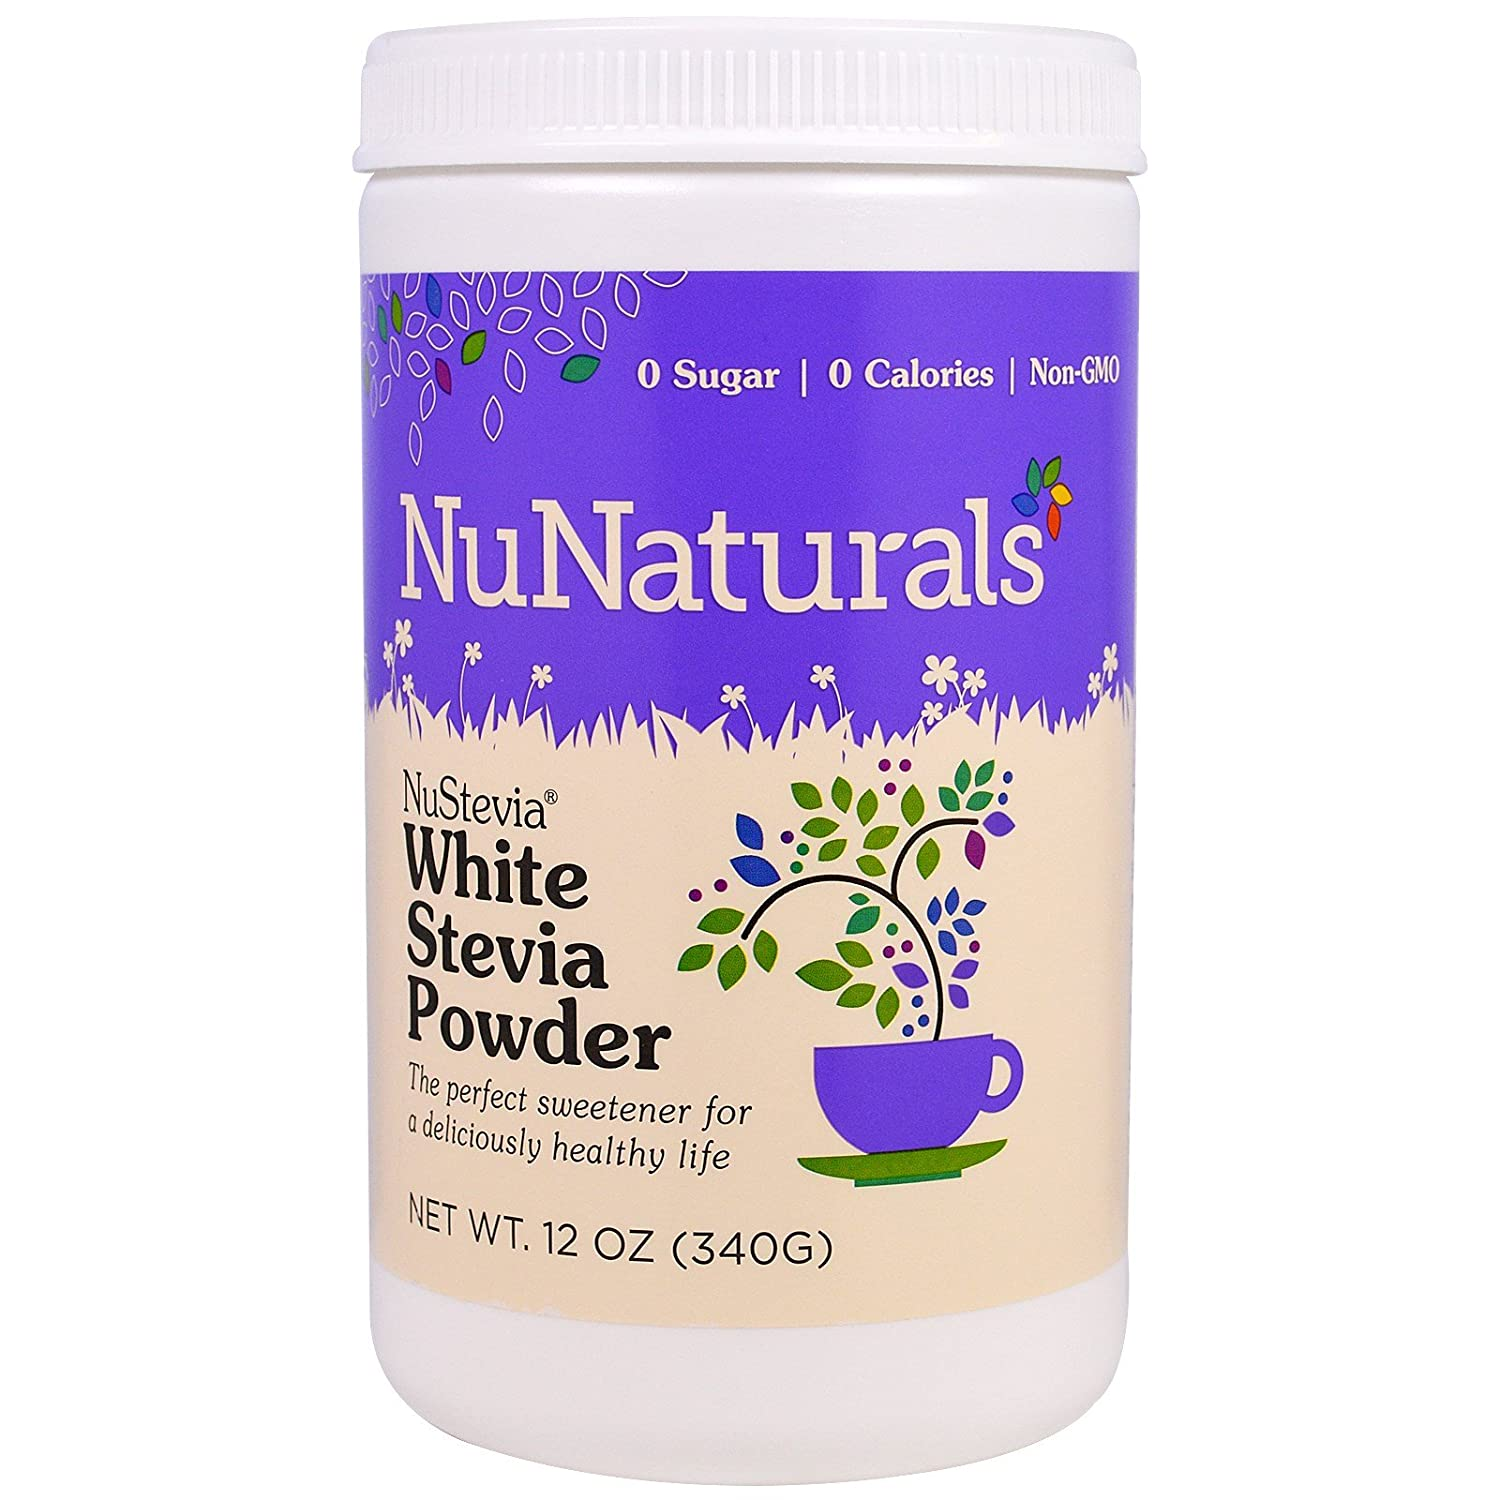 NuStevia White Stevia Powder, 12 oz 340 g Pack of 2